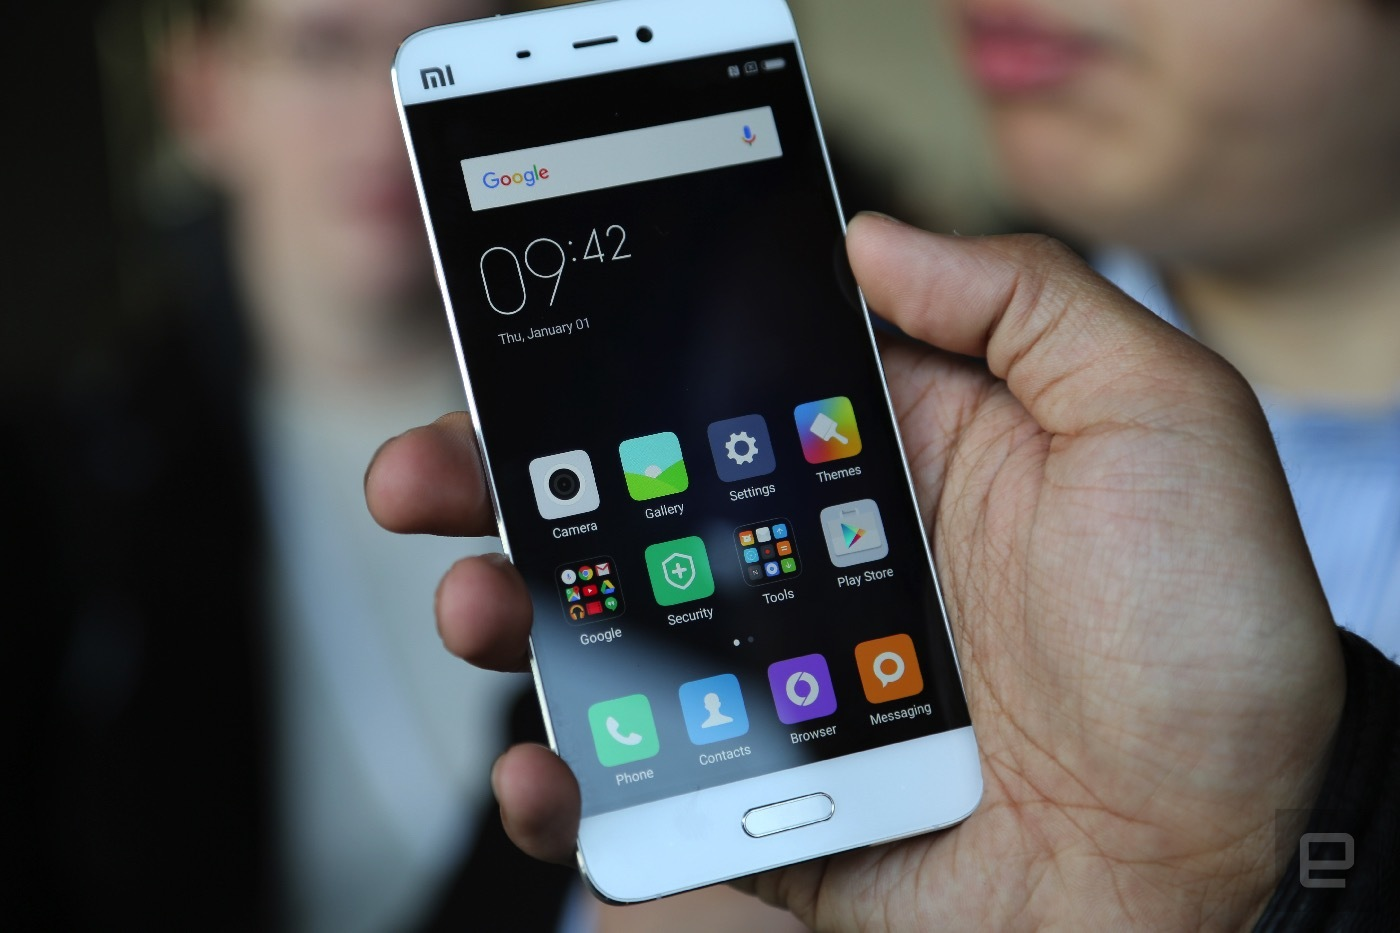 Xiaomi bundles Microsoft Office and Skype with its devices